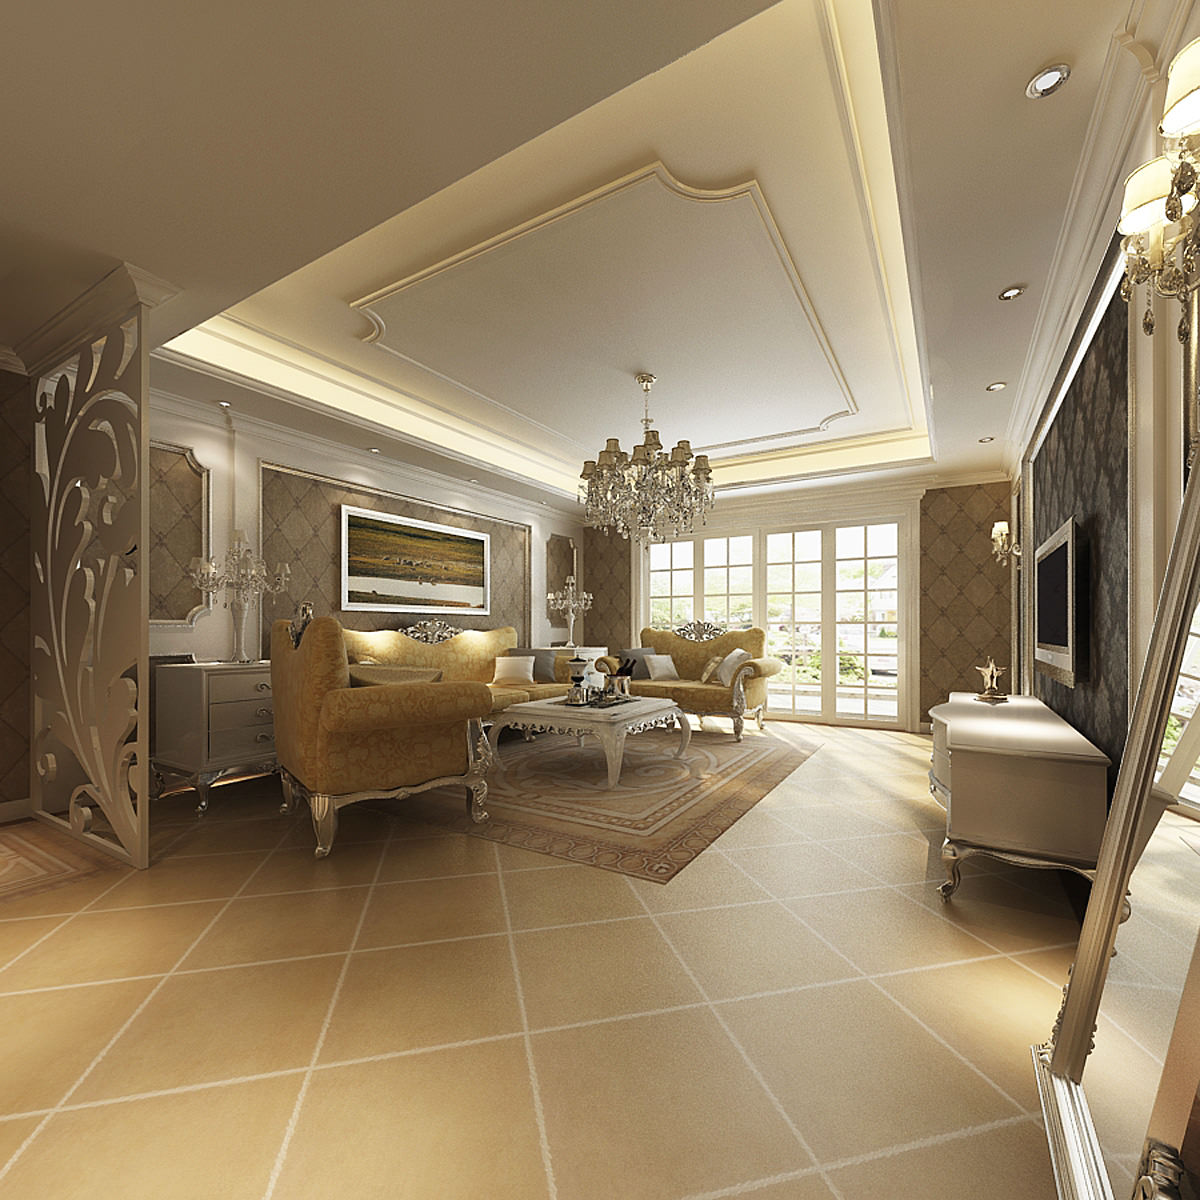 Photoreal luxurious living room interior 3d model max for Living room 3d model